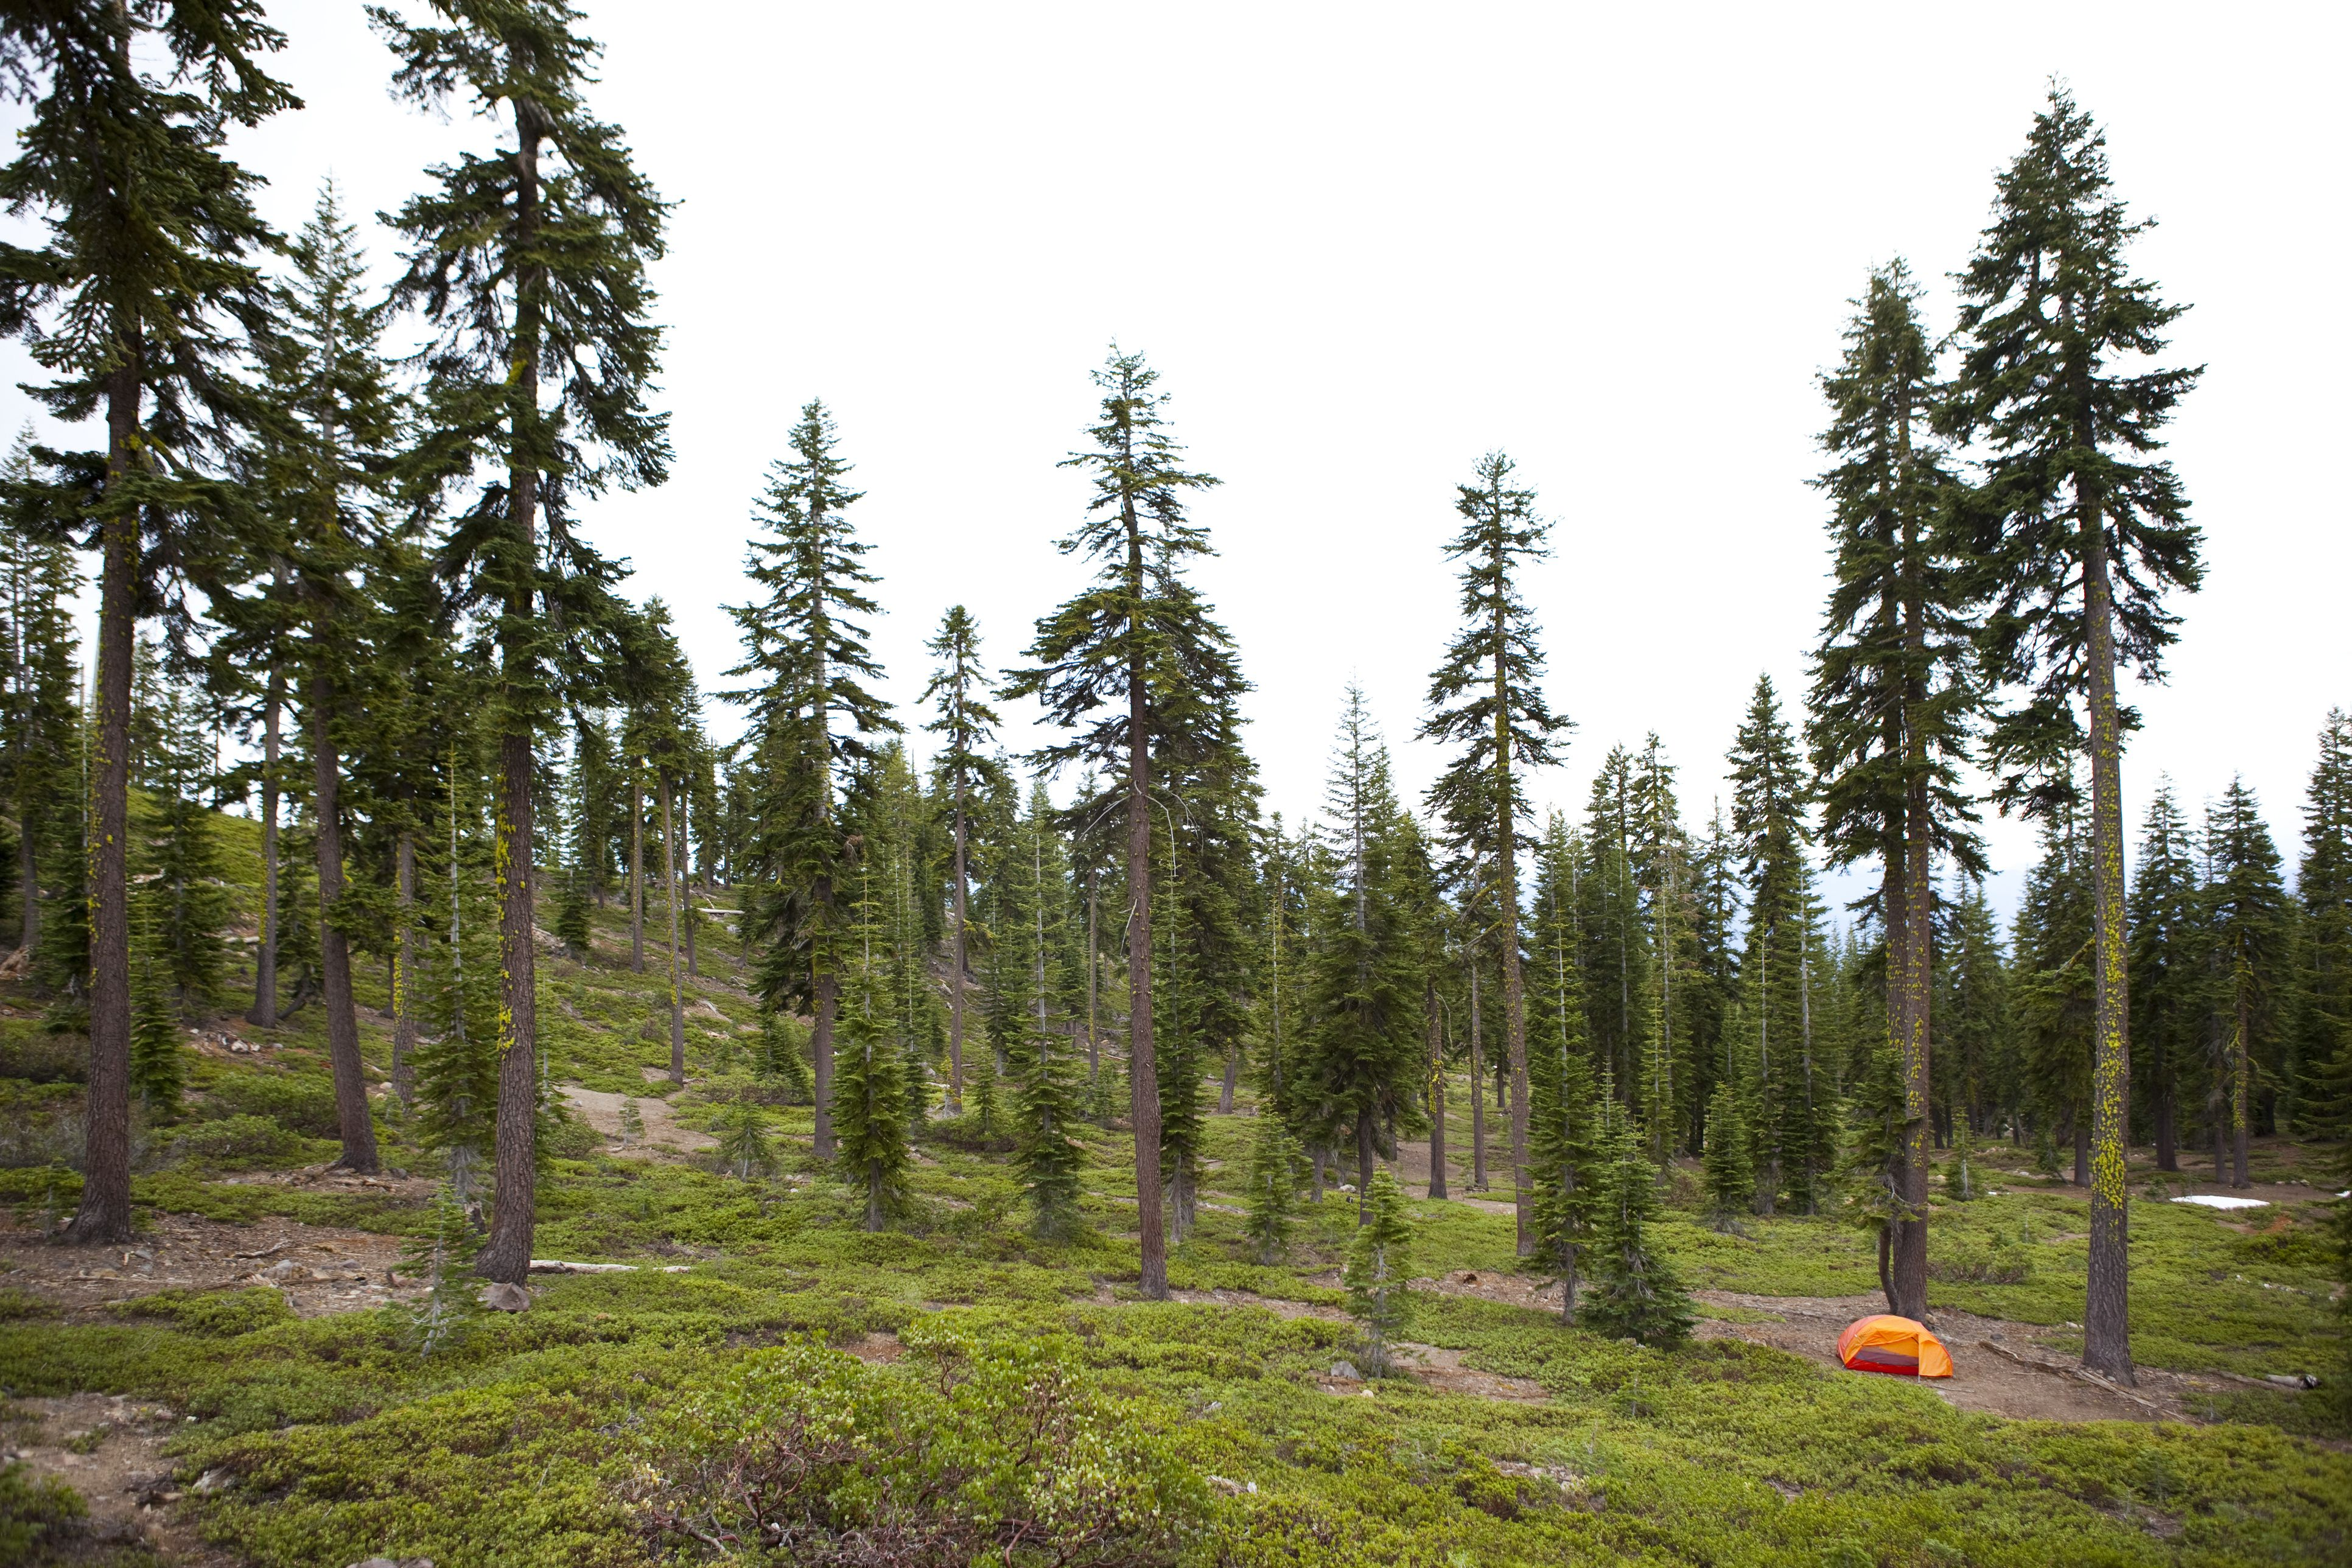 A summer day camping at the foot of Mt. Shasta